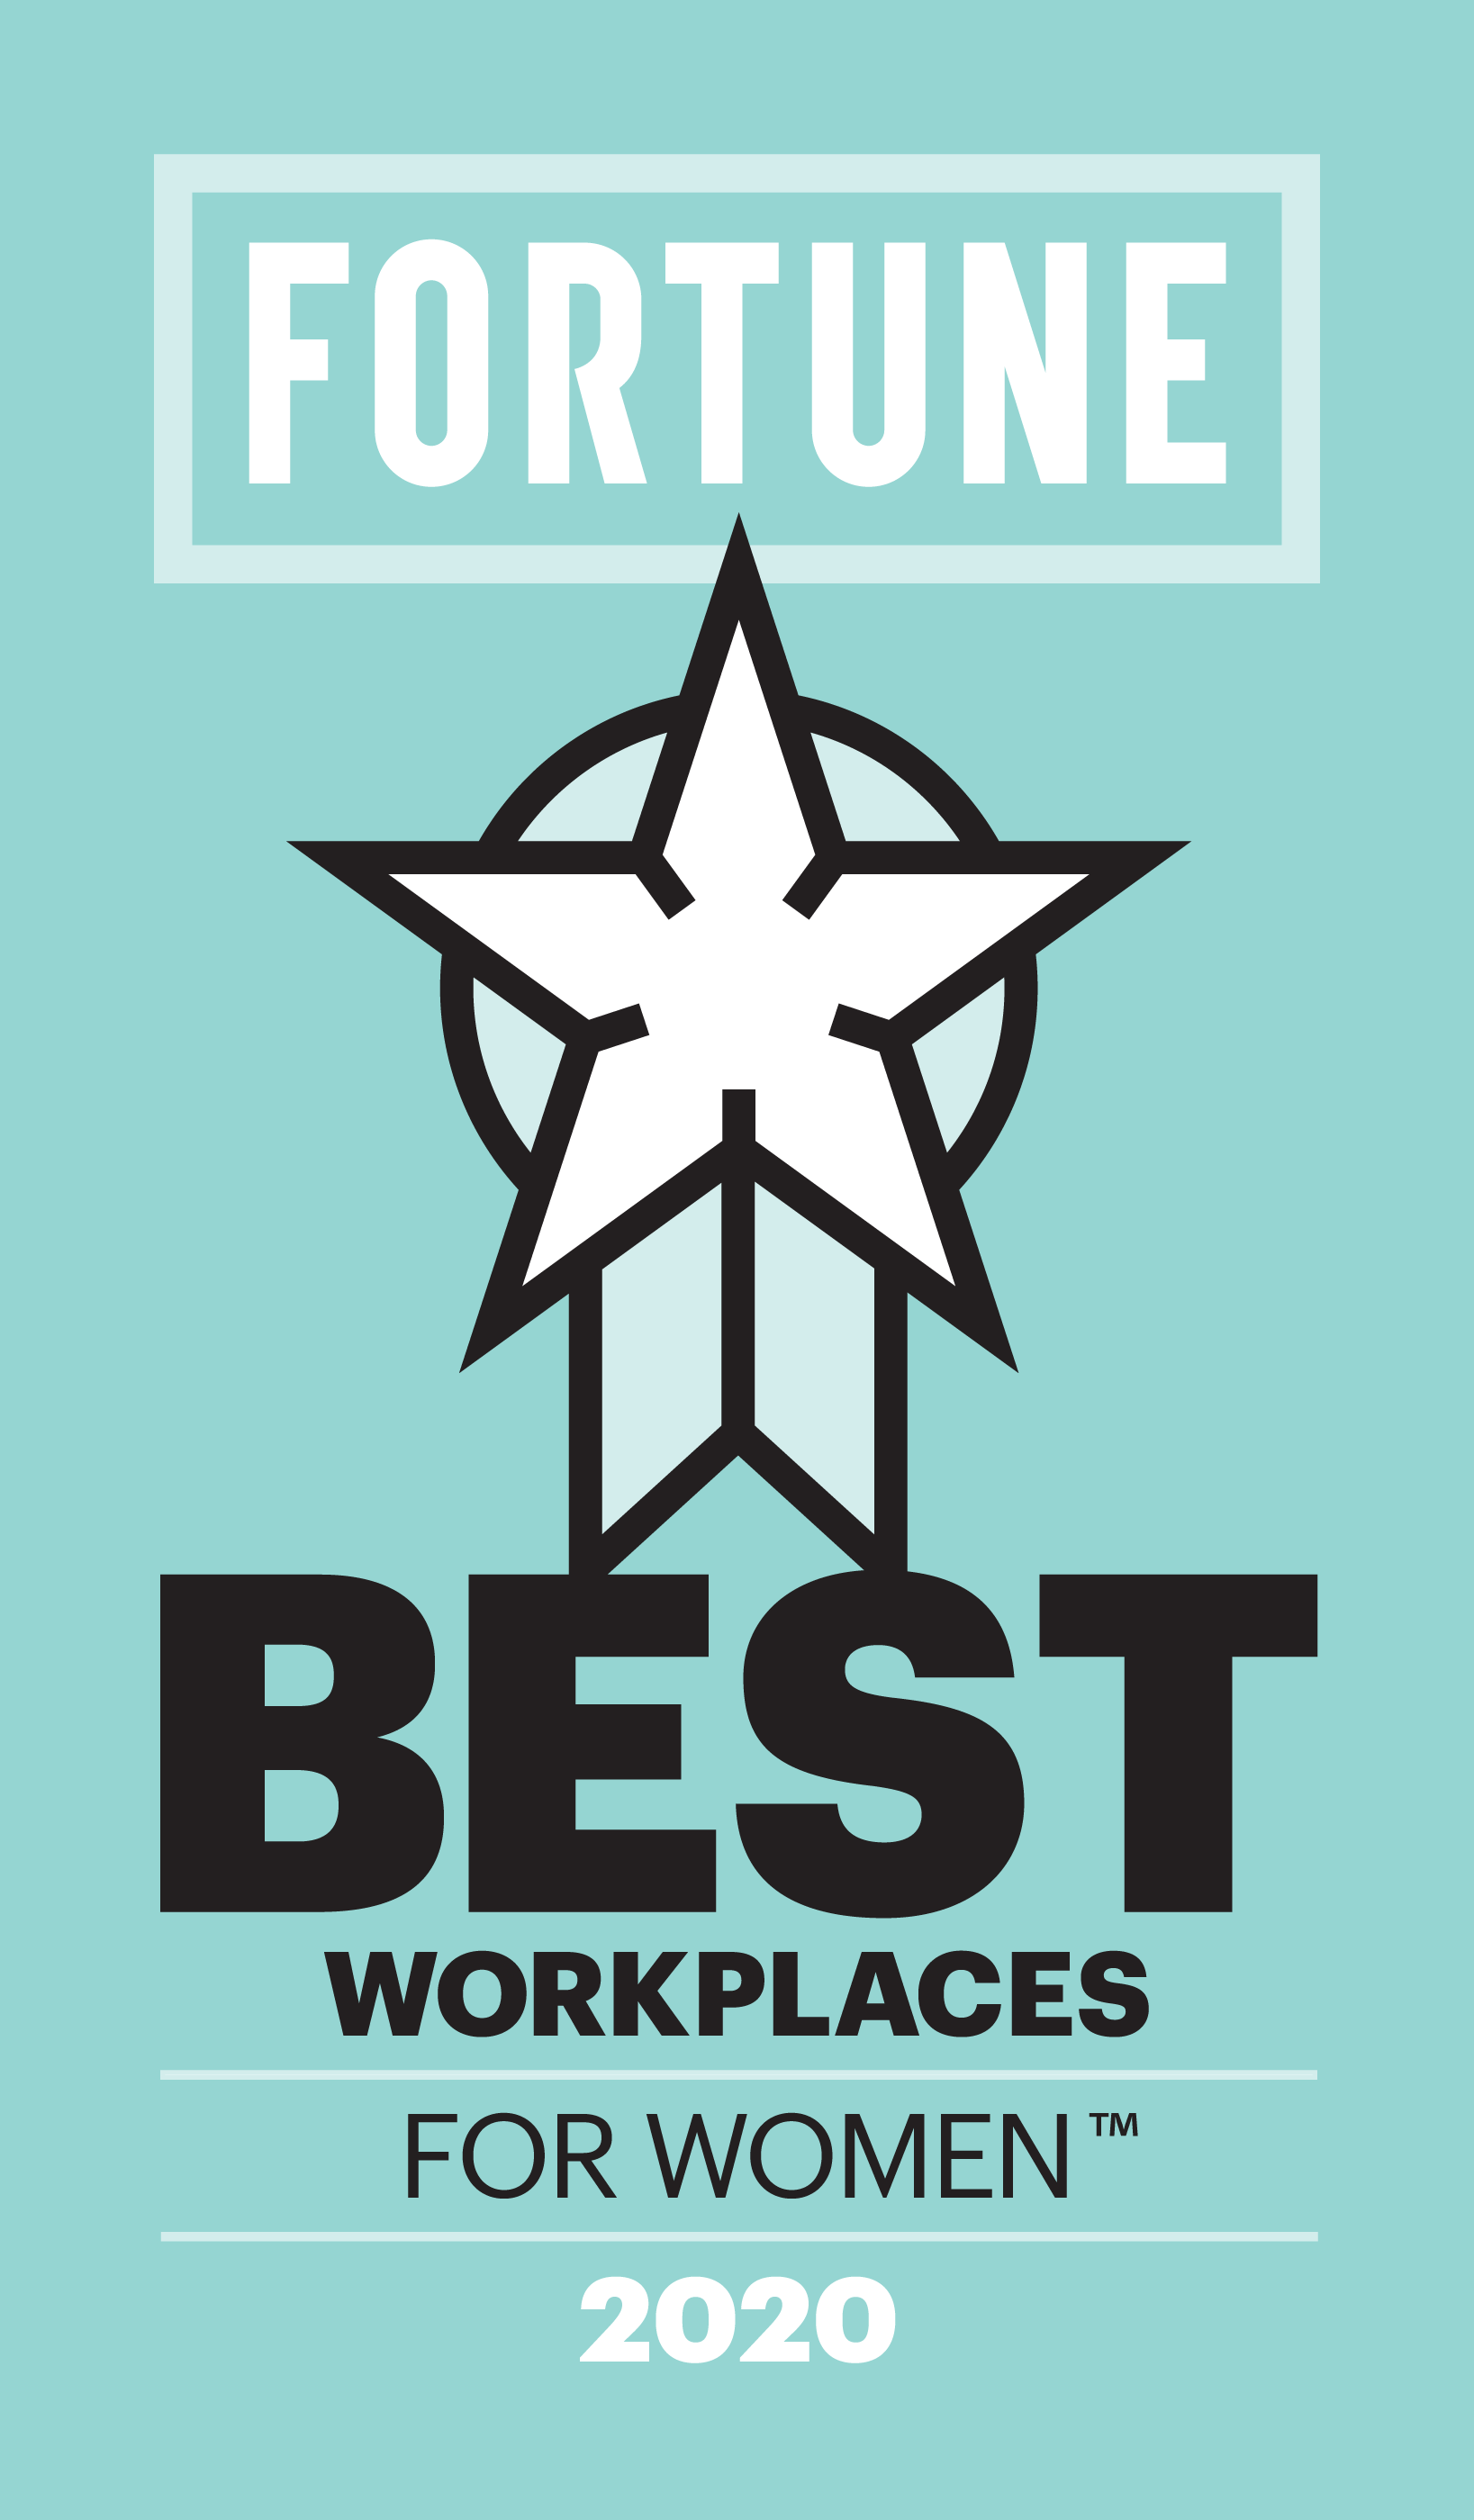 Fortune's 2020 Best Workplaces for Women Award